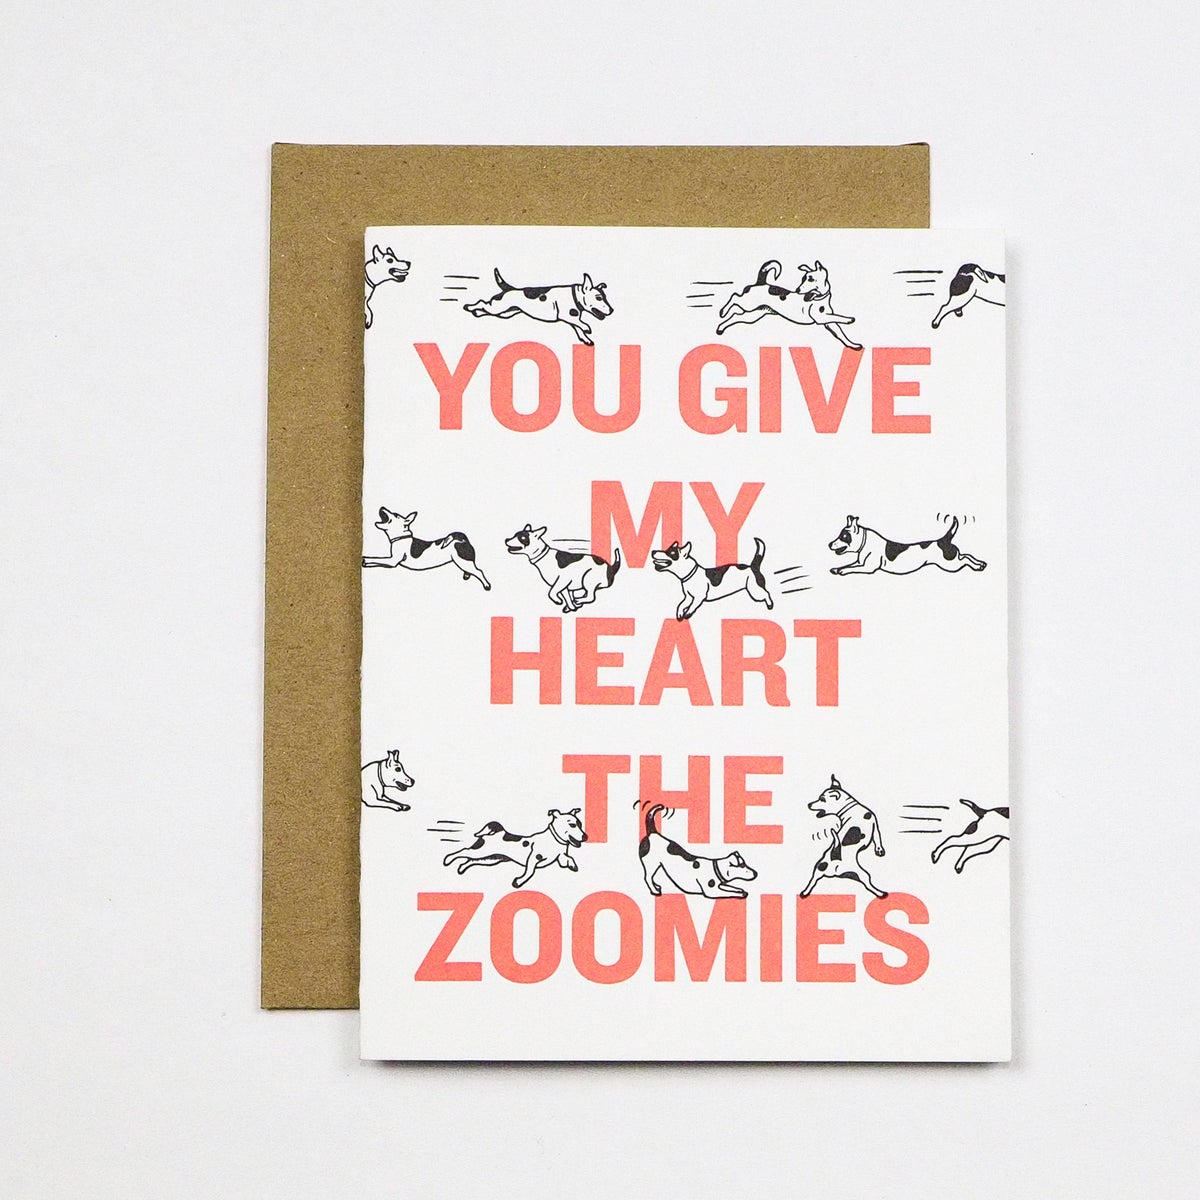 Image of You Give My Heart the Zoomies